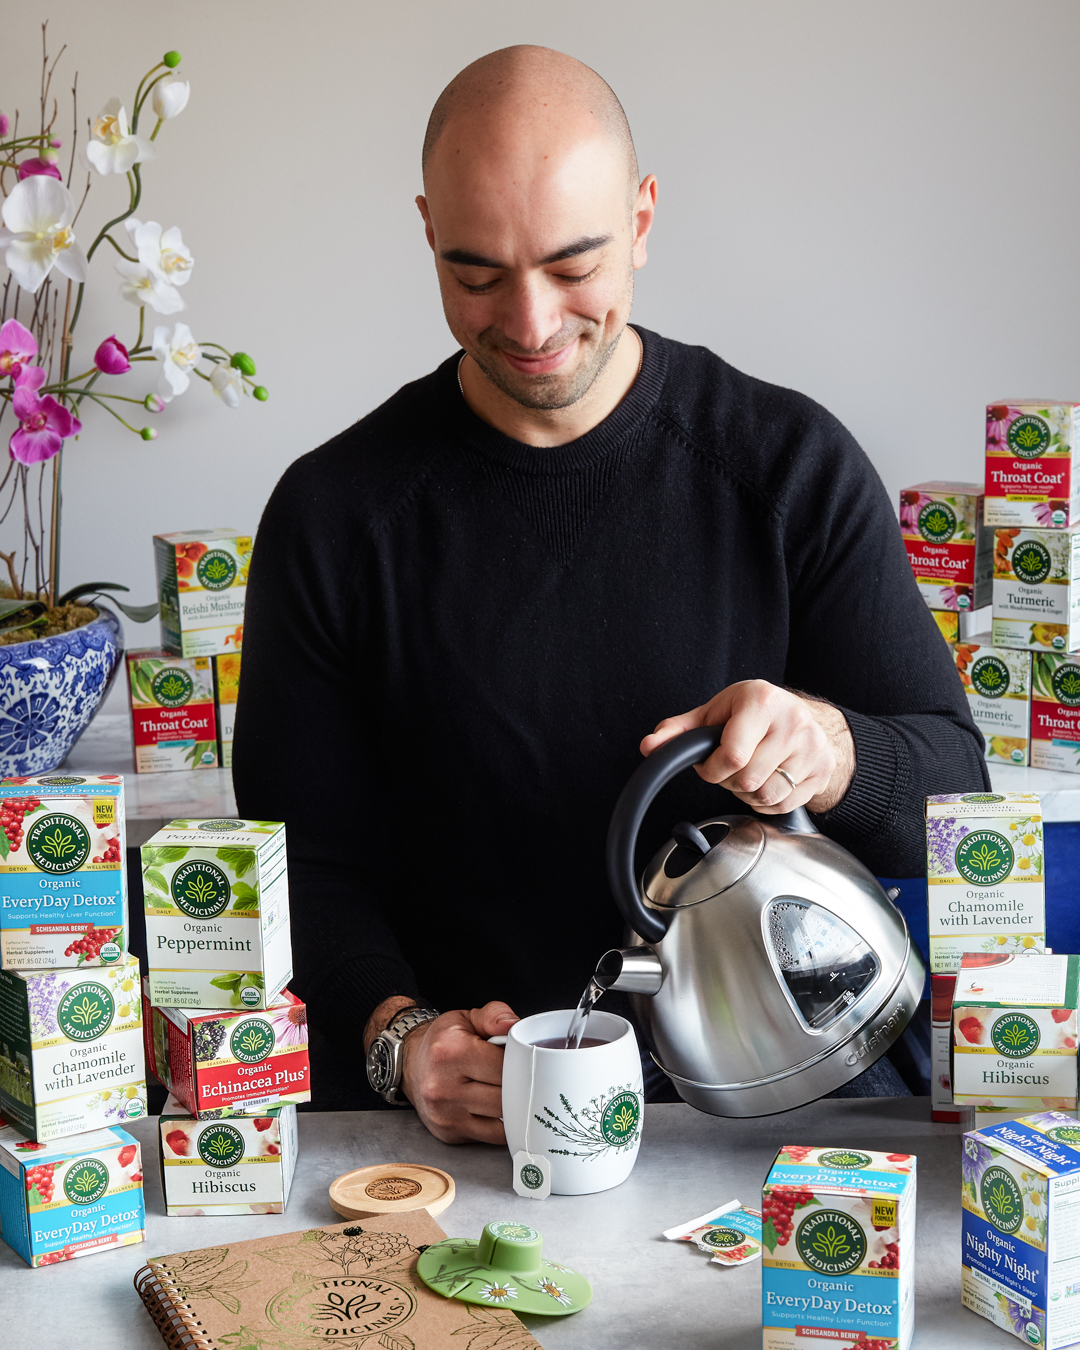 Traditional Medicinals One-Year Supply Tea Giveaway Primal Gourmet January Whole30